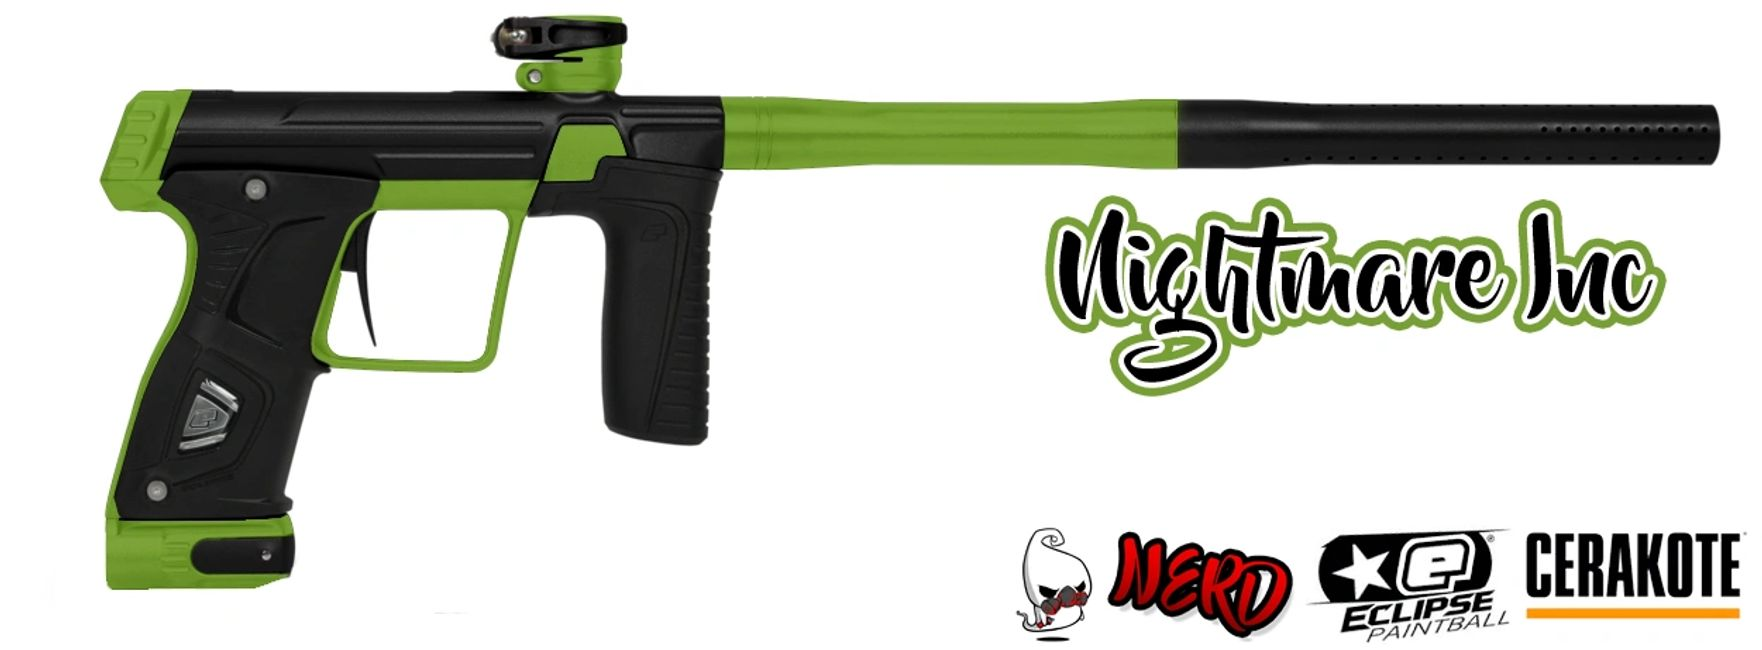 Lime Green Planet Eclipse Gtek 170R Cerakote accents by Nightmare Inc Paintball and Airsoft